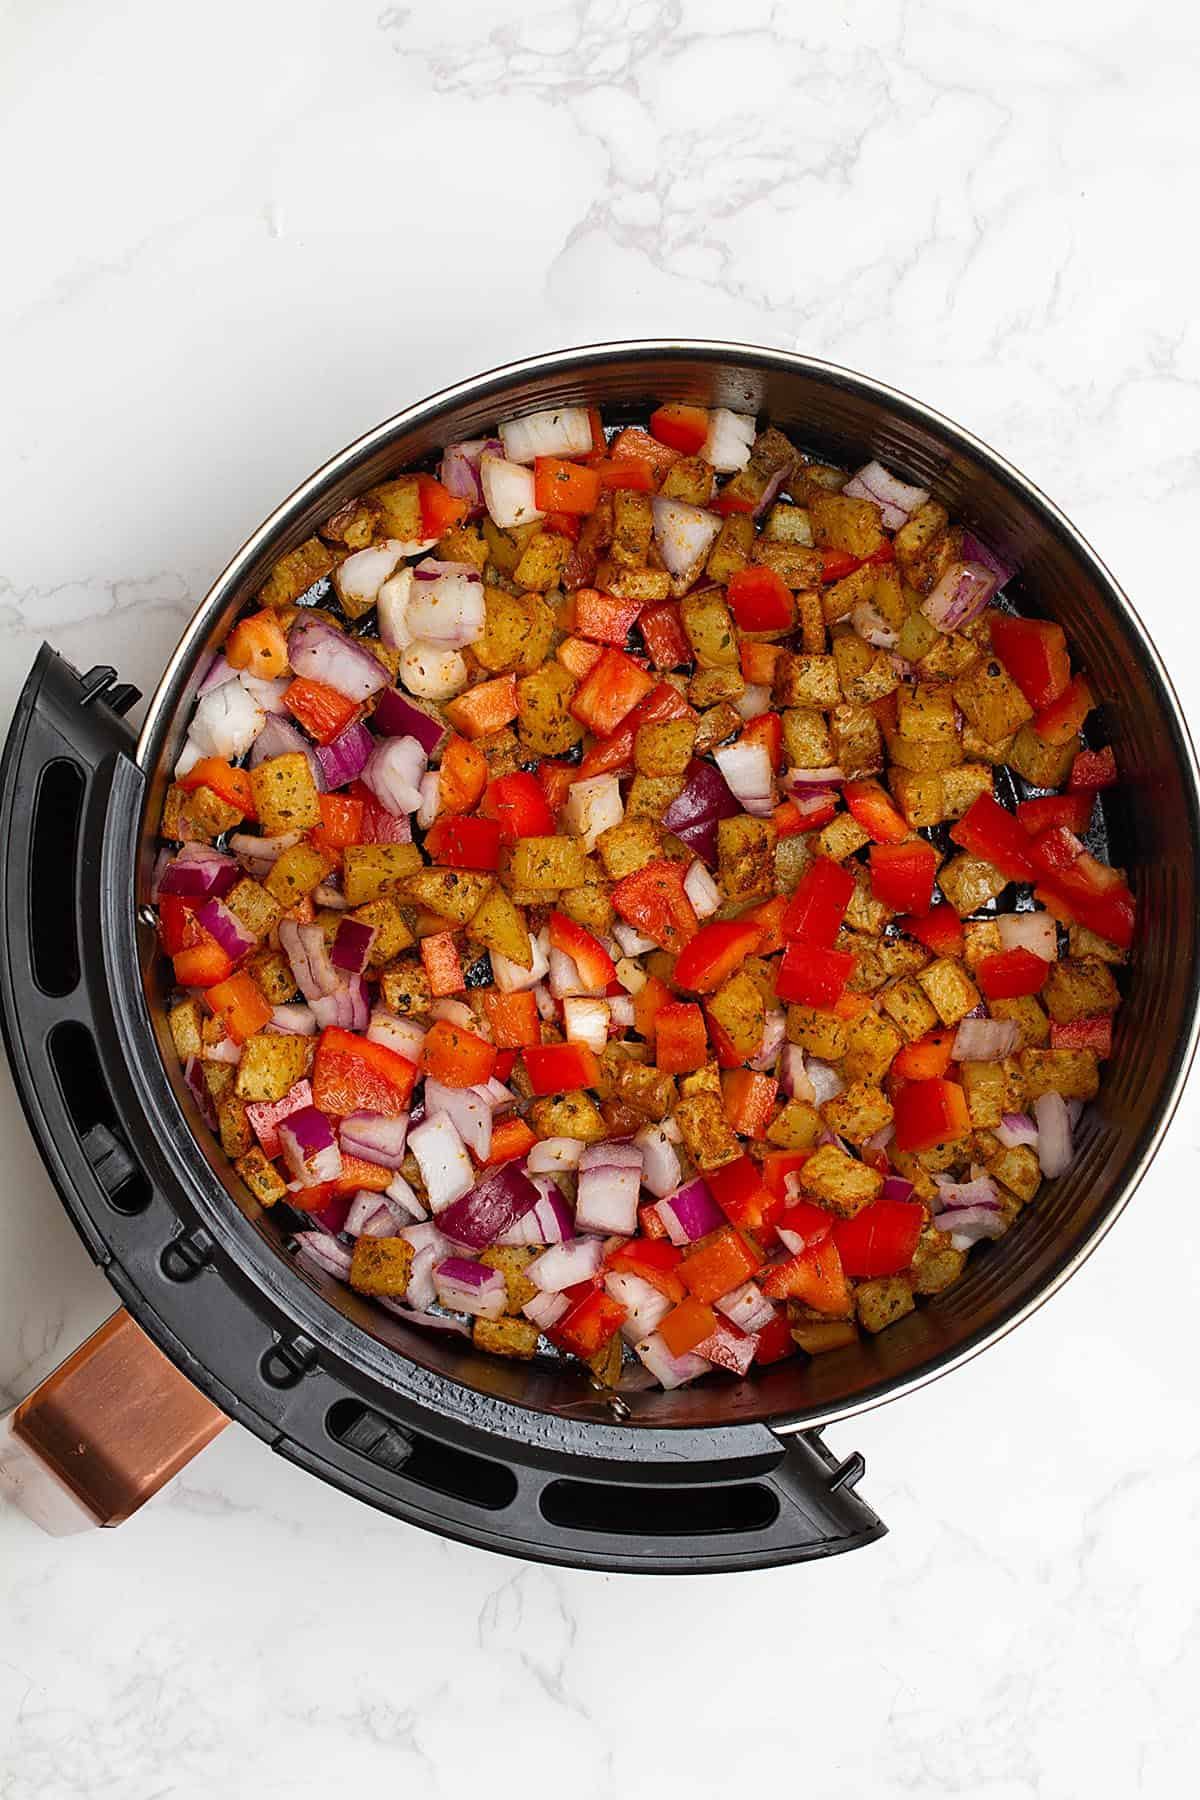 diced potatoes, red peppers and onions in air fryer